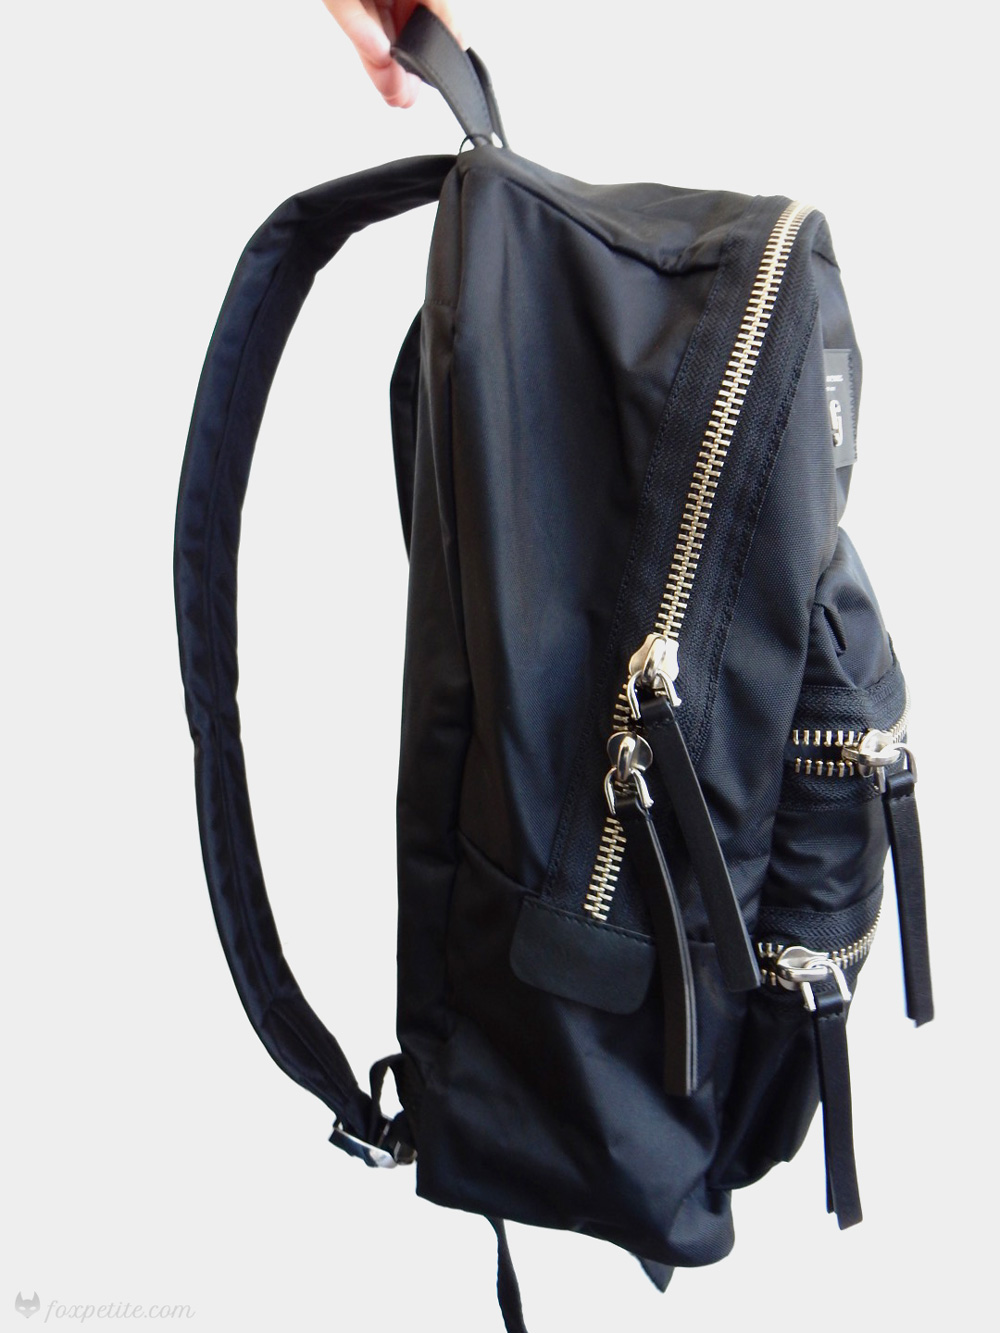 Marc Jacobs  Biker Nylon  Backpack in black and silver